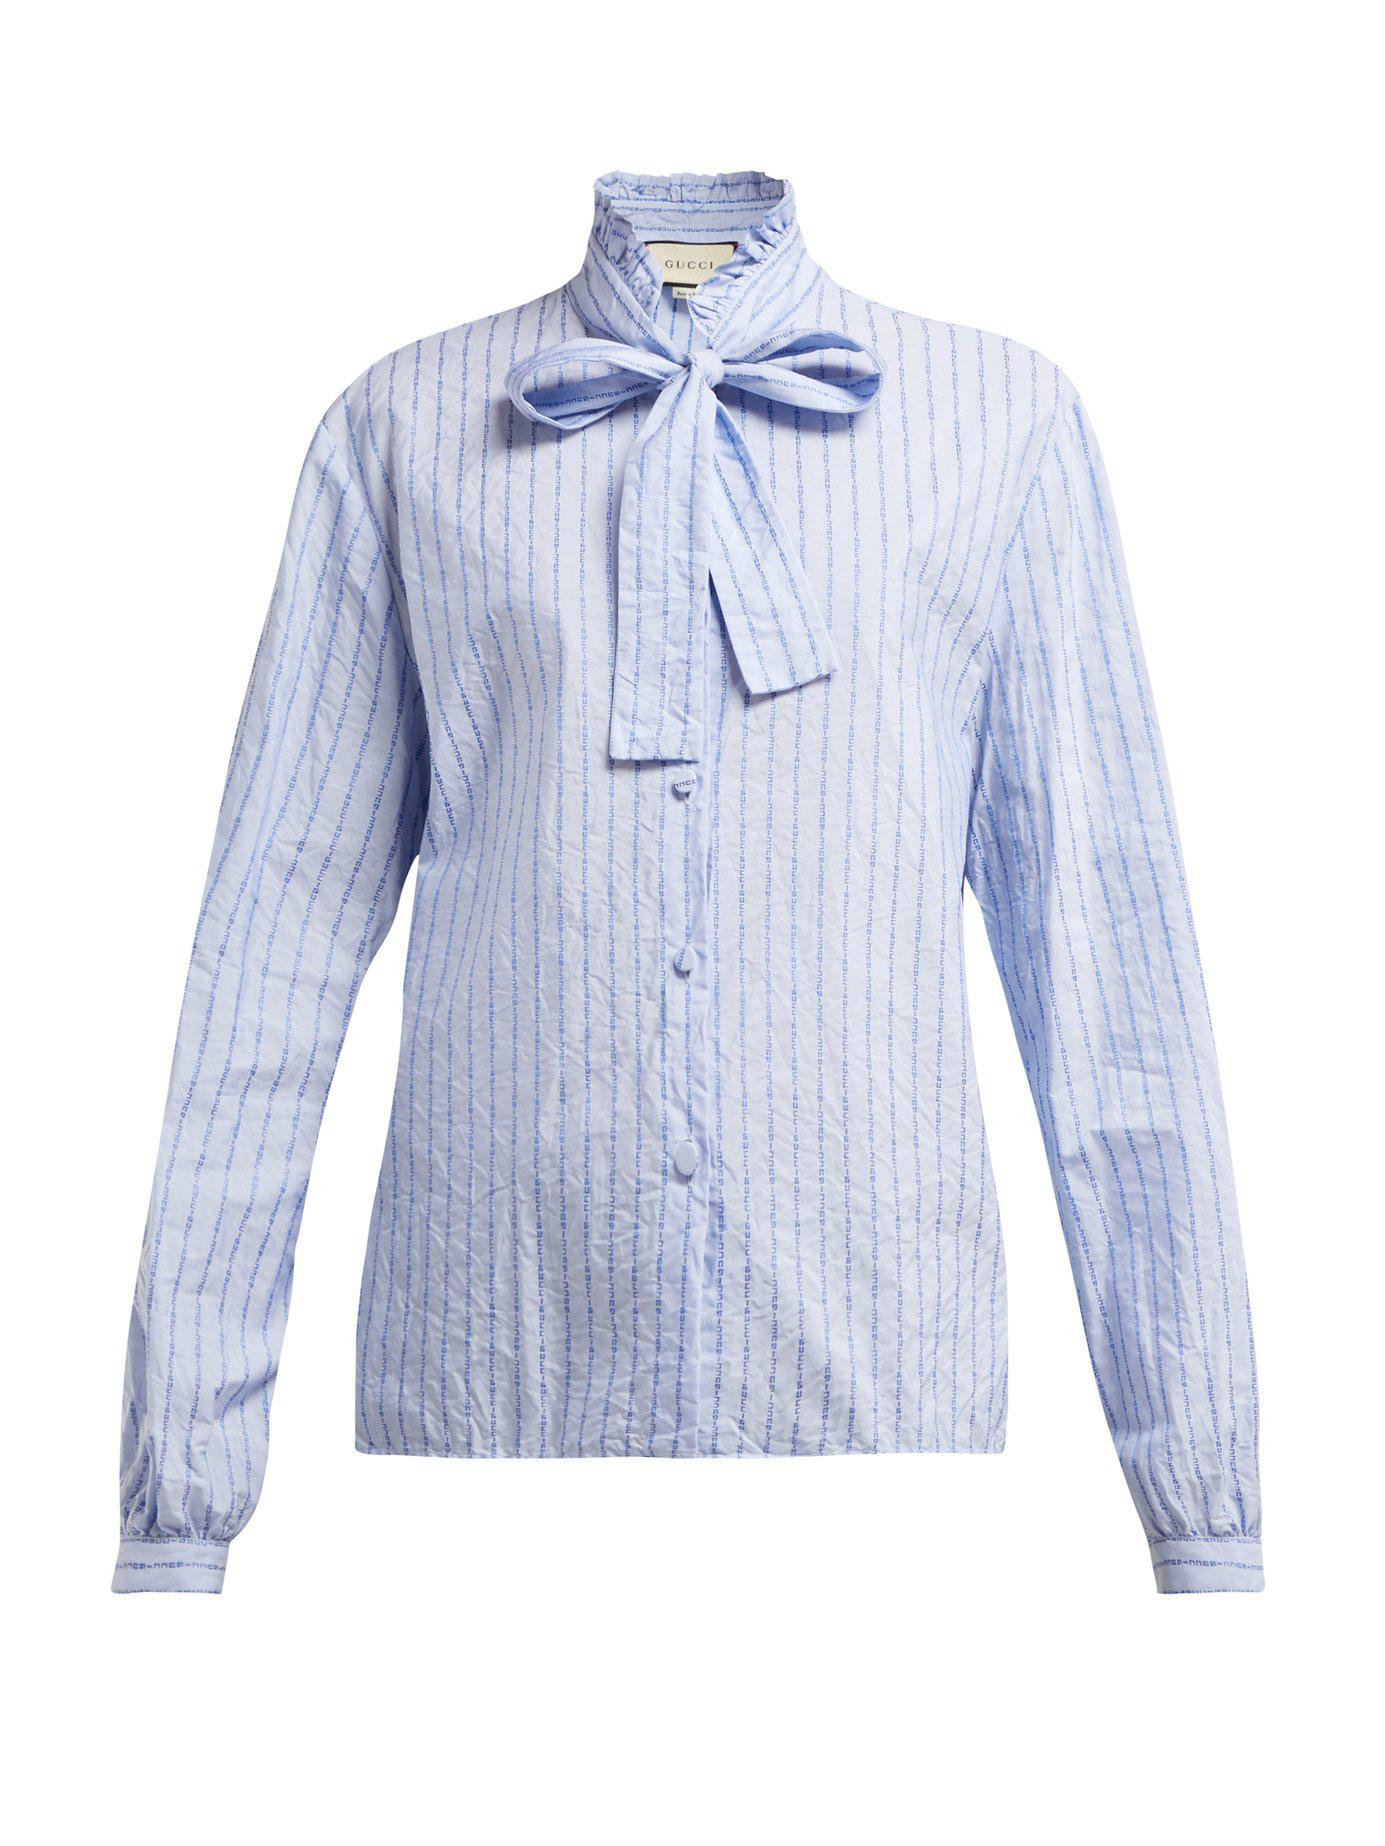 0d22f7c33 Gucci Pussy Bow Striped Logo Jacquard Cotton Shirt in Blue - Lyst